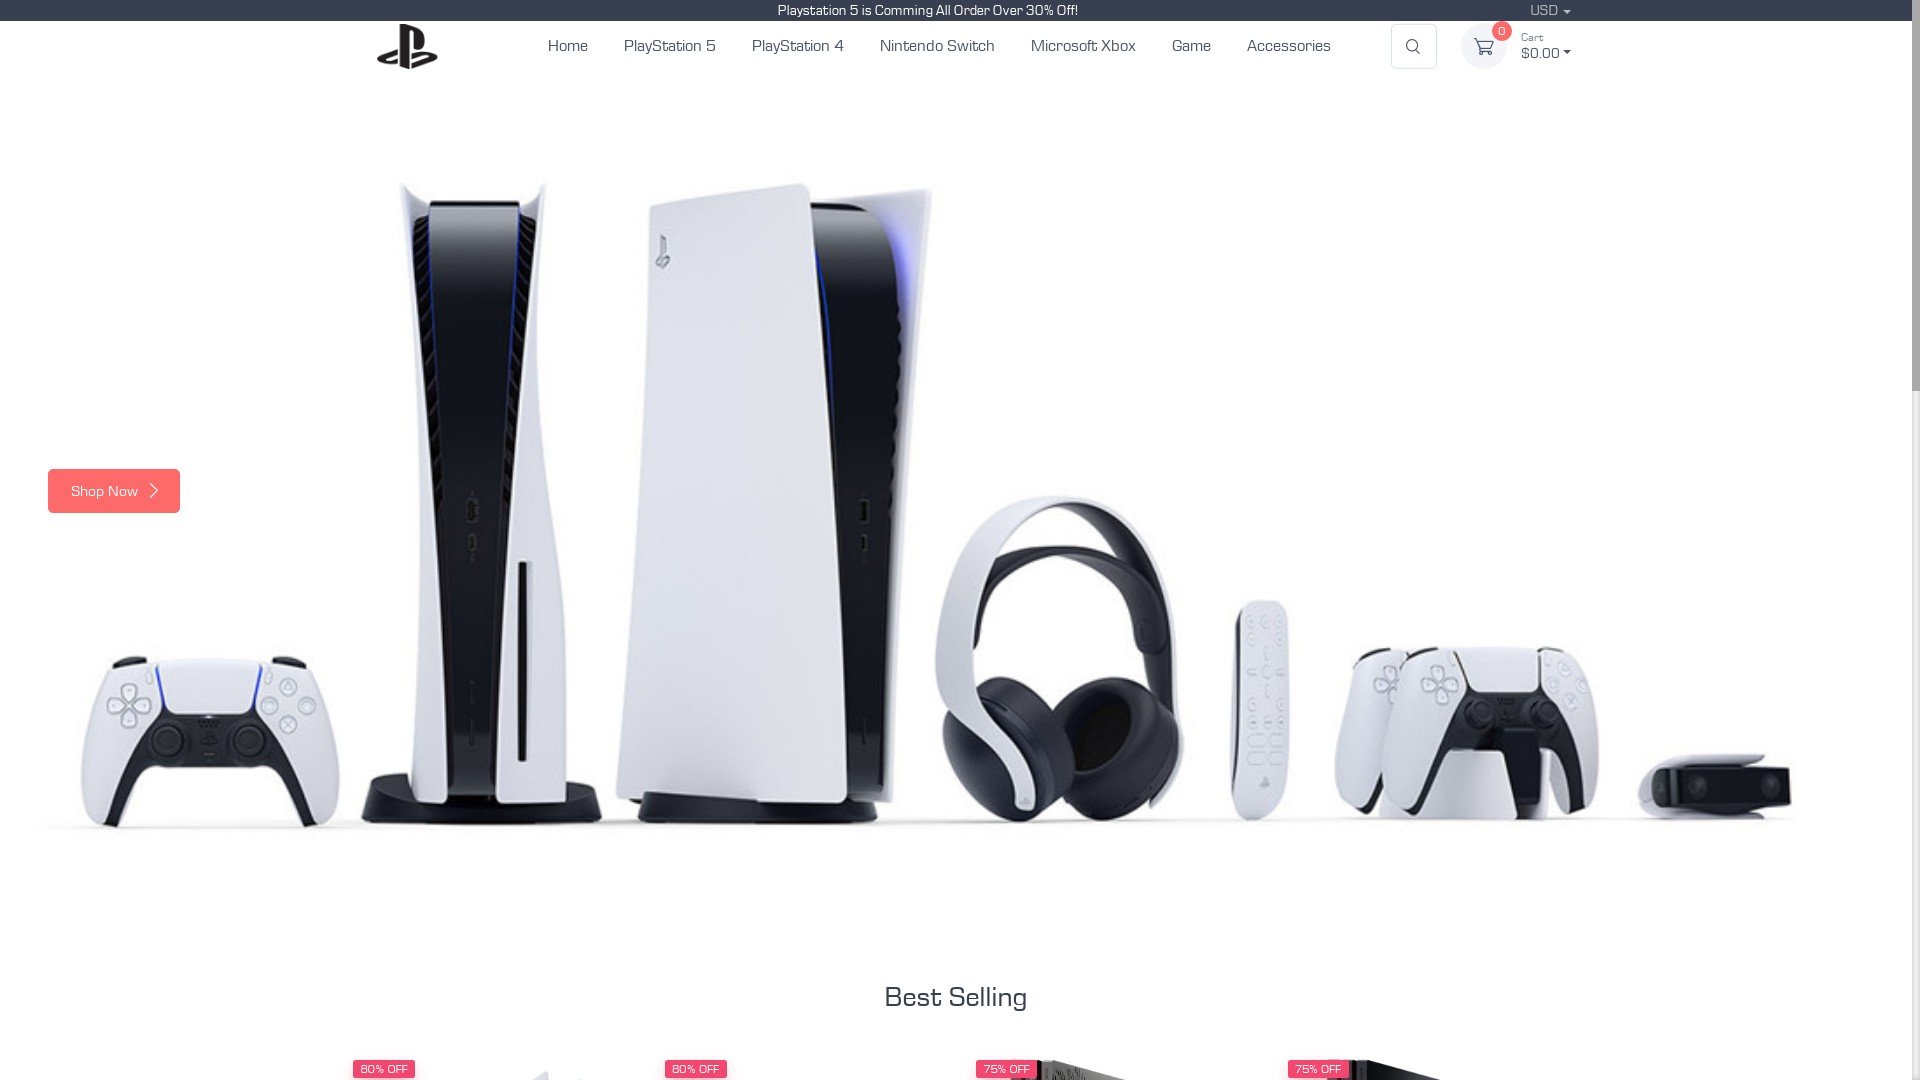 Shopvipone Fun Reviews  Is the Gaming Store a Scam?